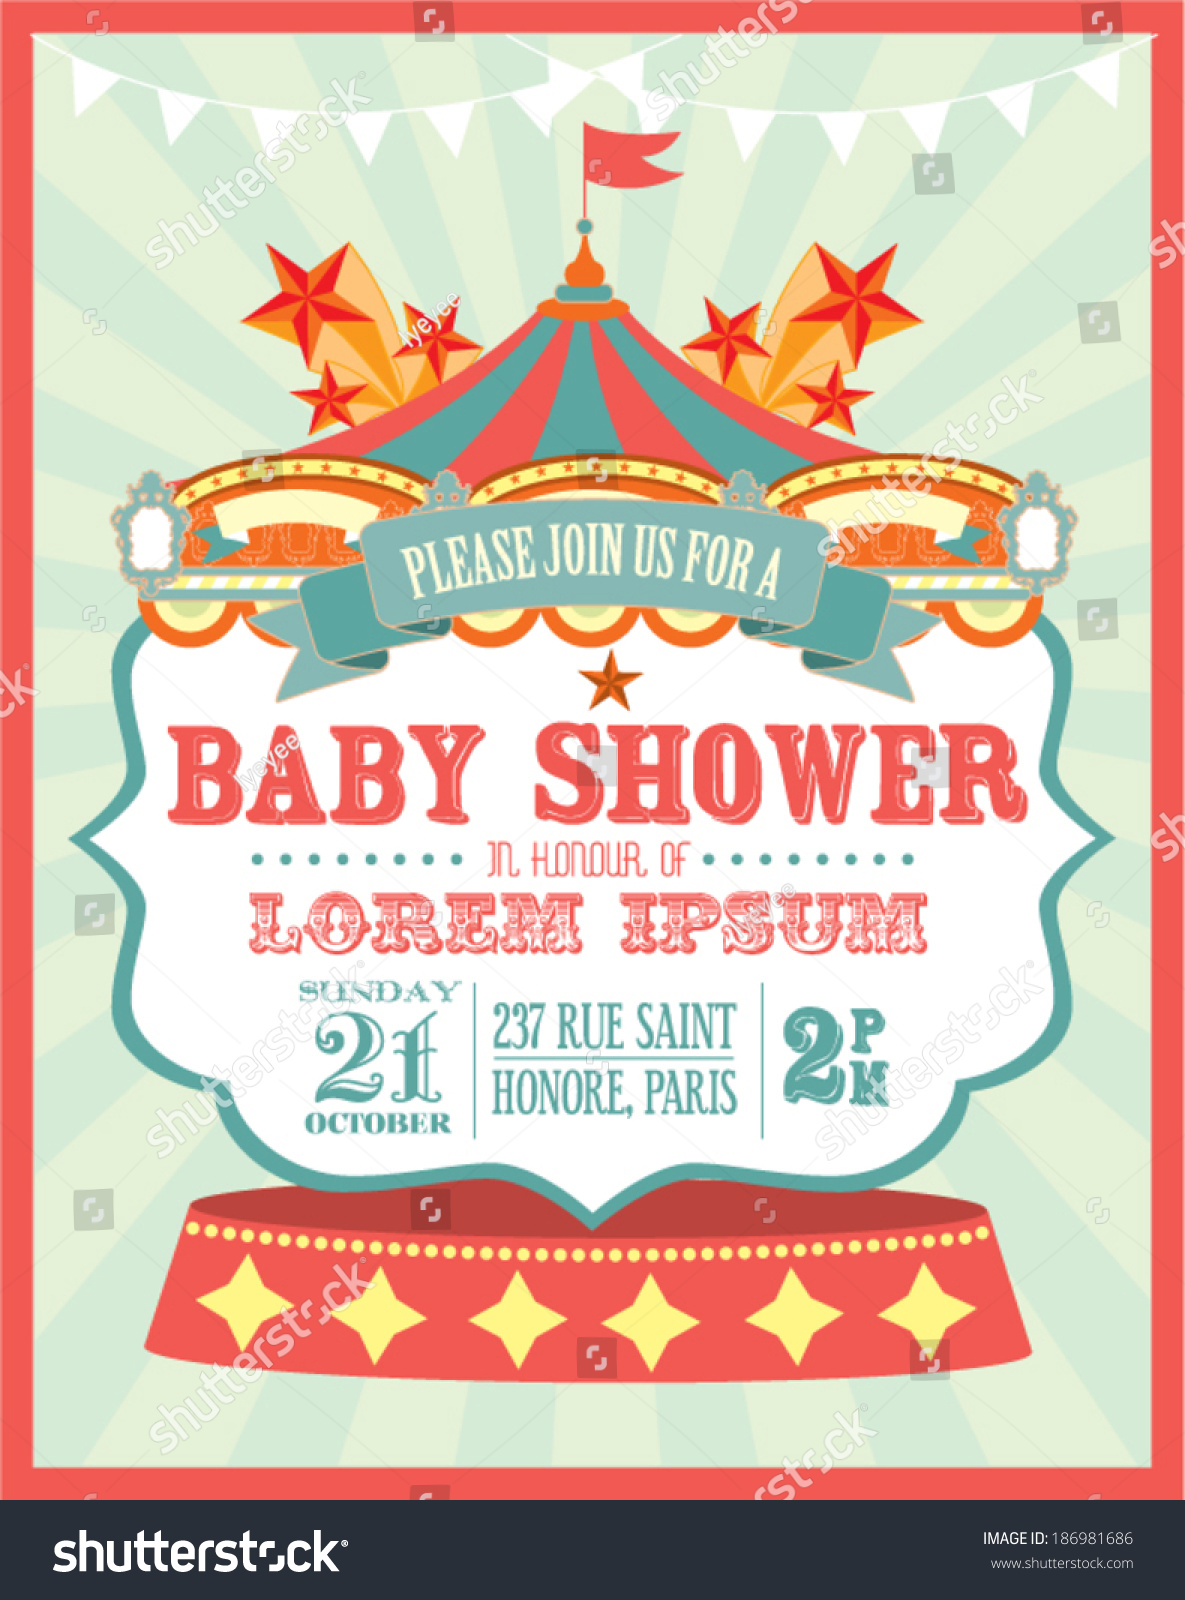 carnival baby shower invitation card template stock vector